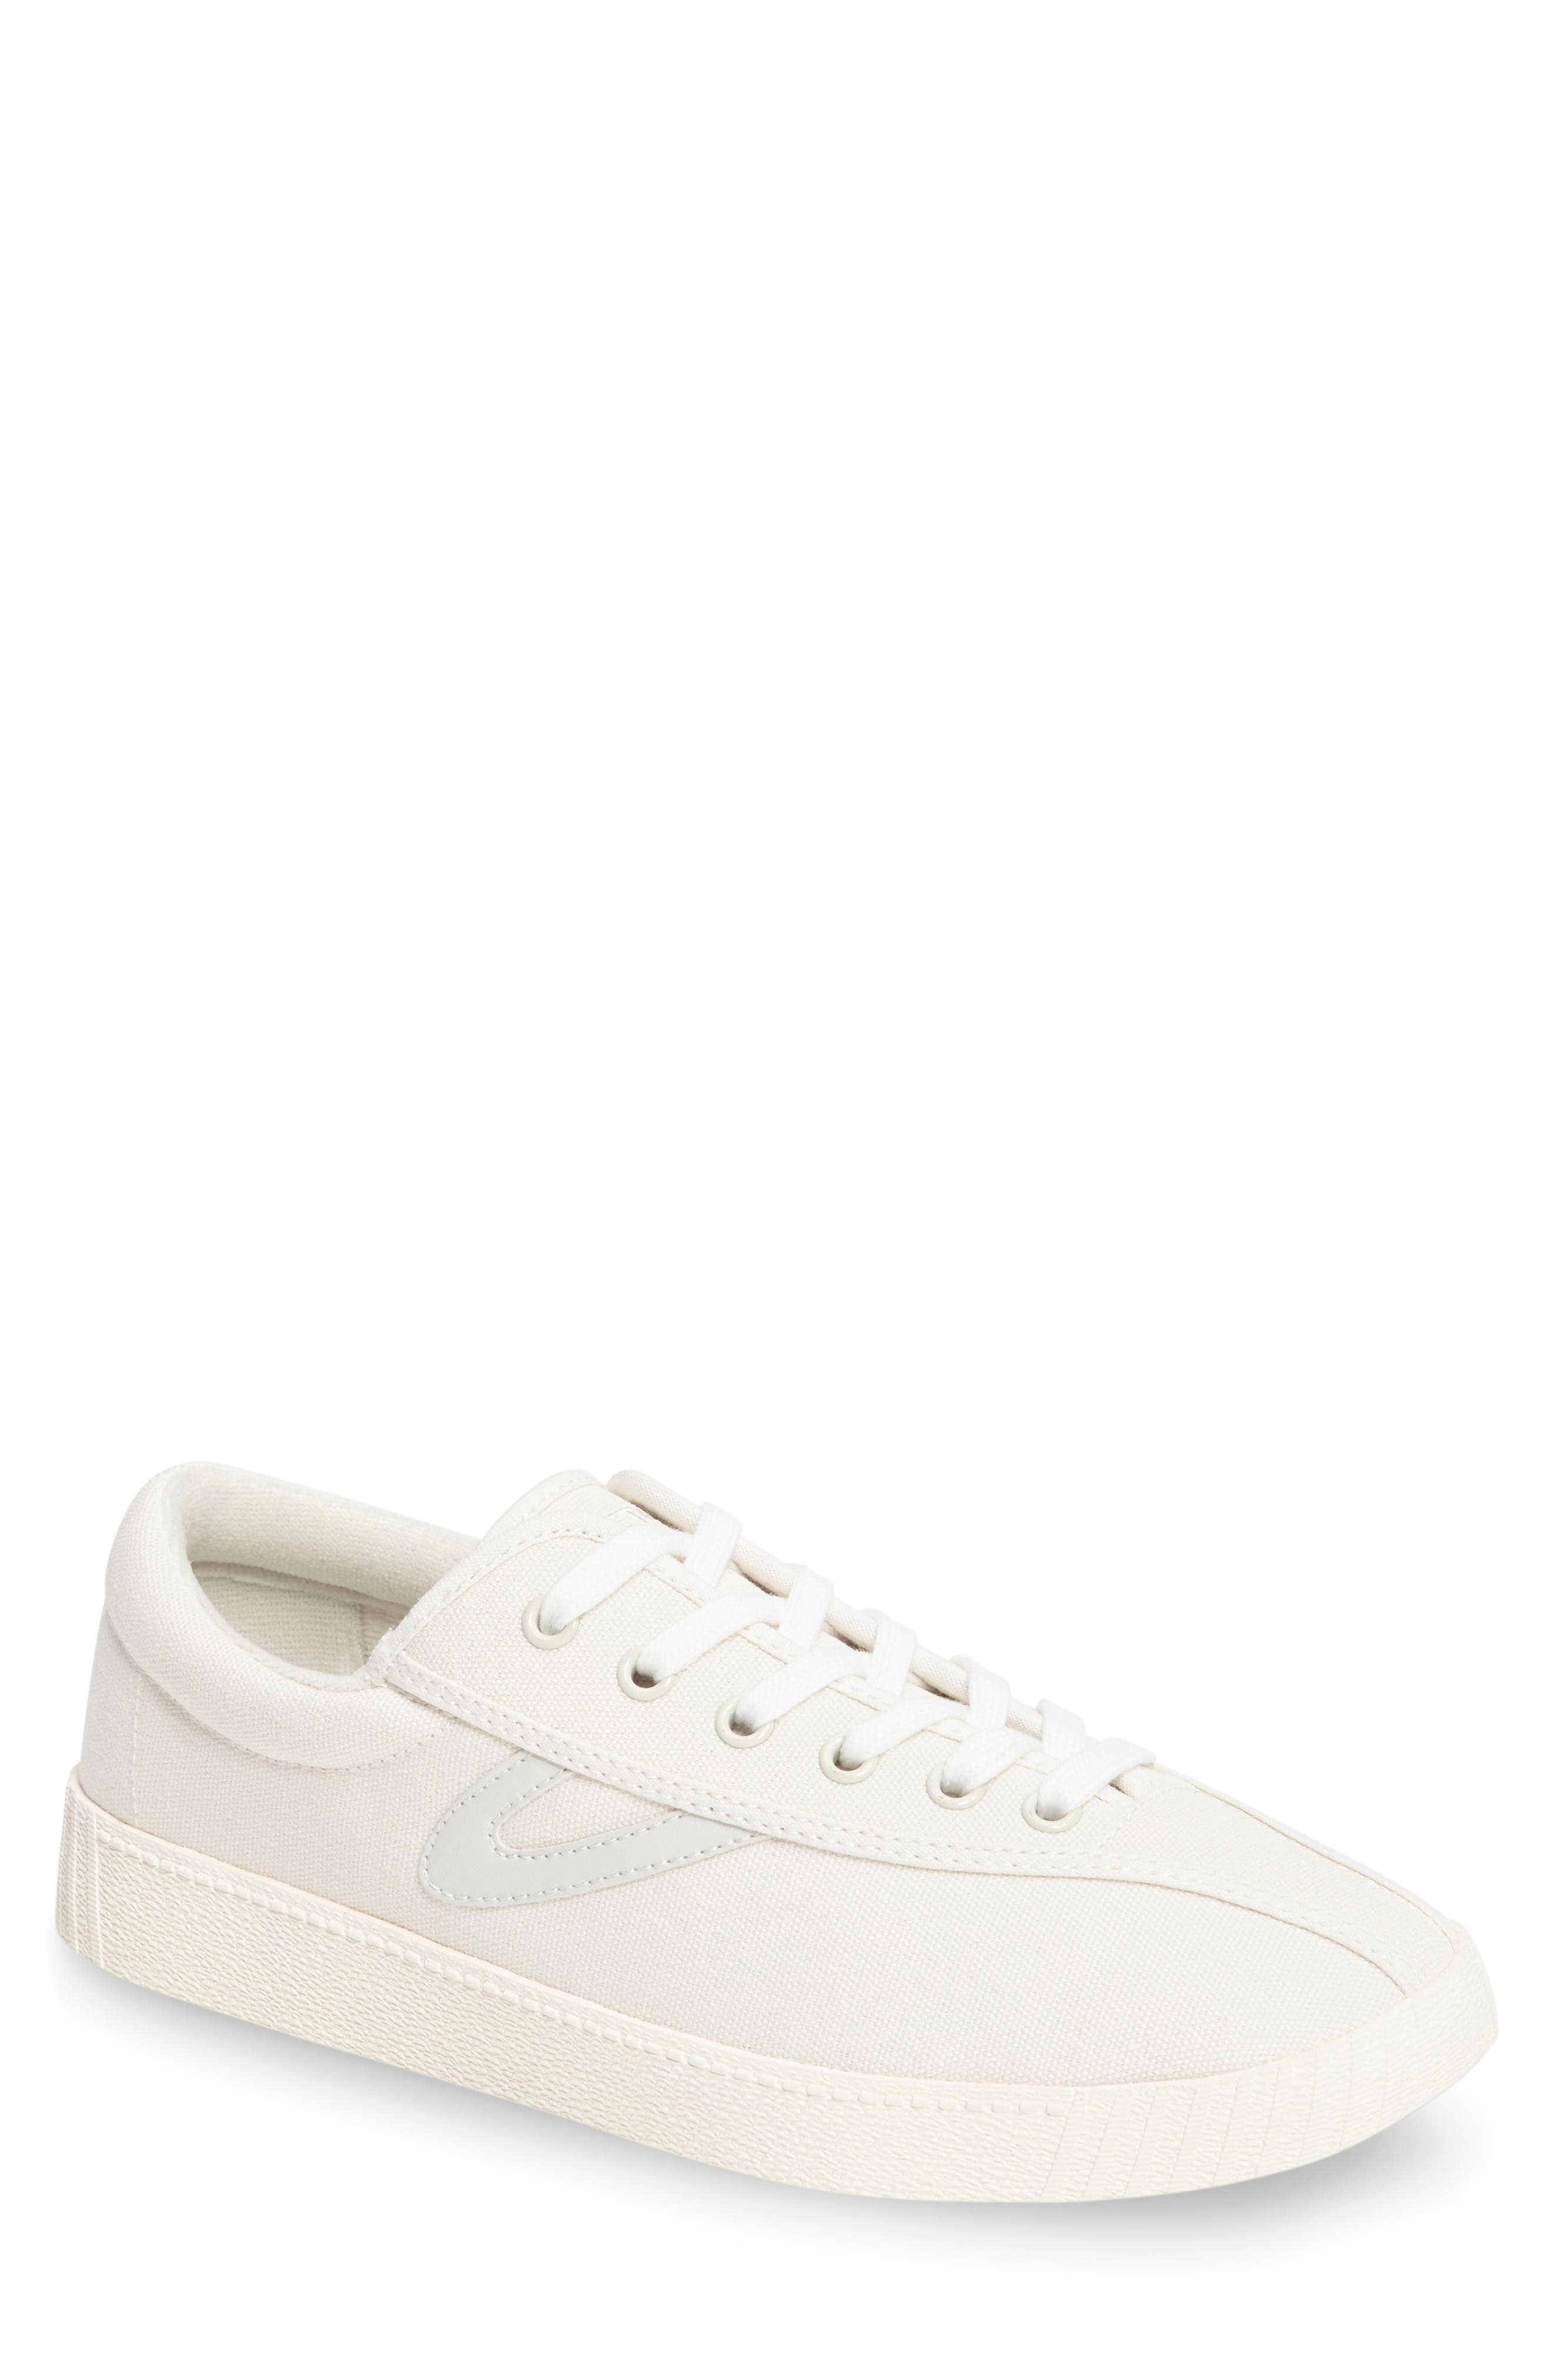 Nylite Plus Sneaker,                         Main,                         color, White/ White/ White Canvas